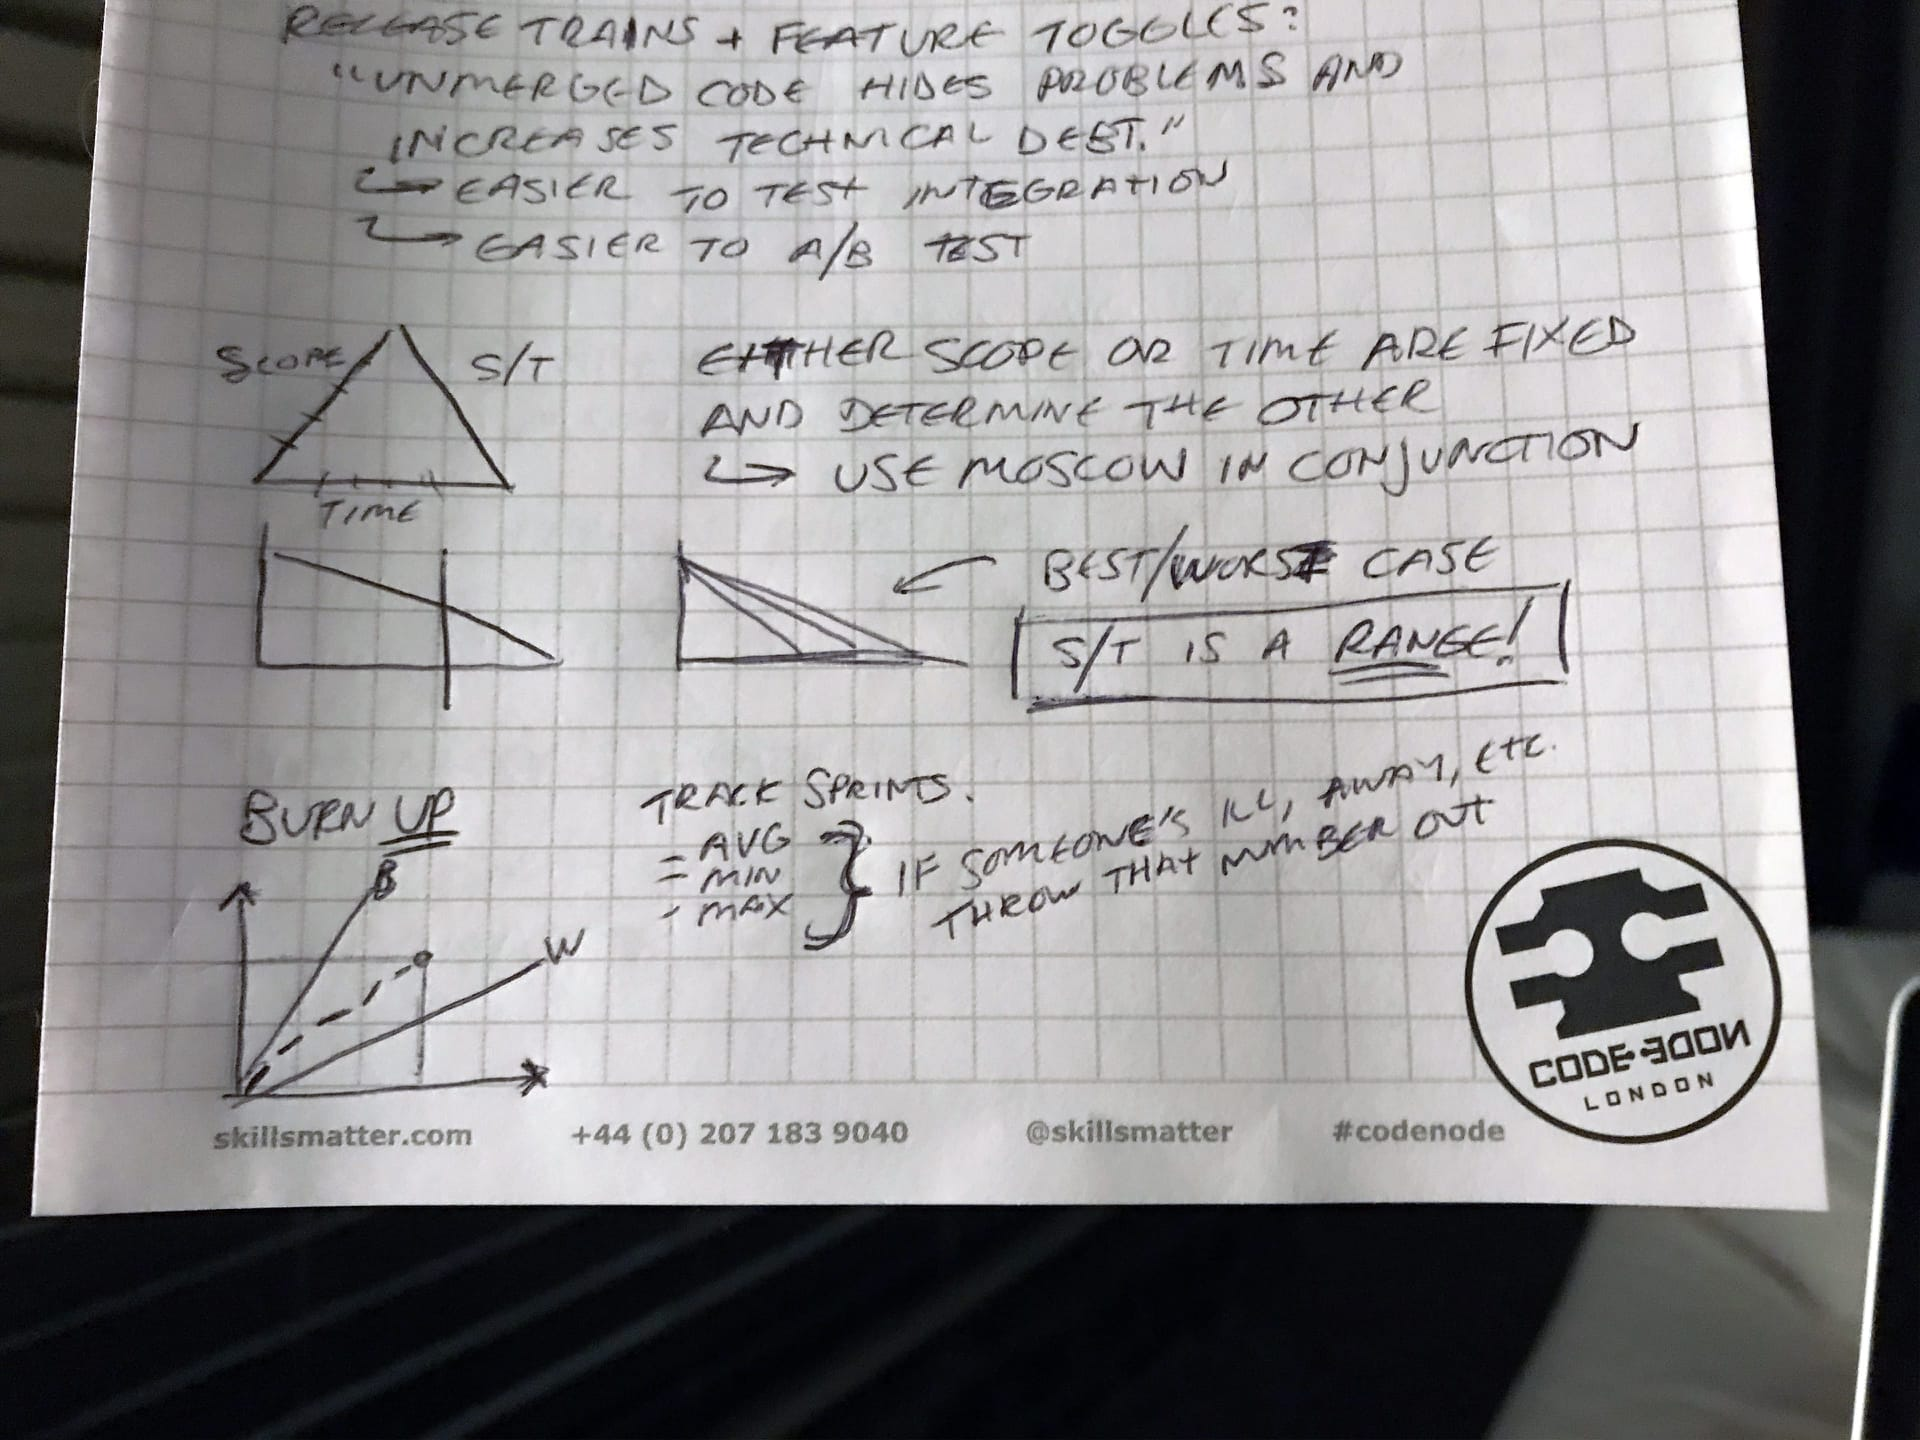 Several small, hand drawn charts on a notepad visualising techniques for determining project scope and time